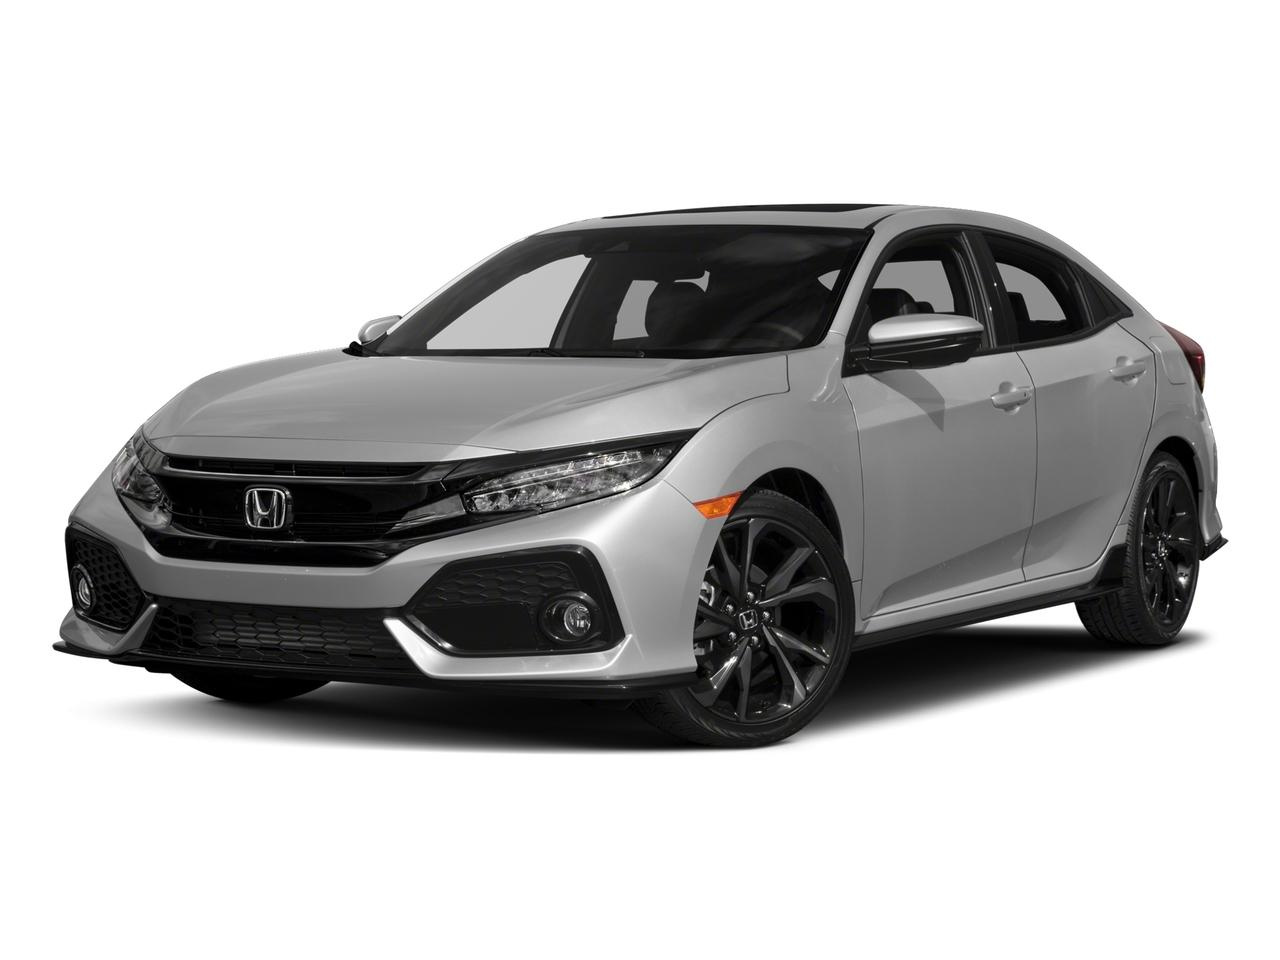 2017 Honda Civic Hatchback Vehicle Photo in Pittsburg, CA 94565